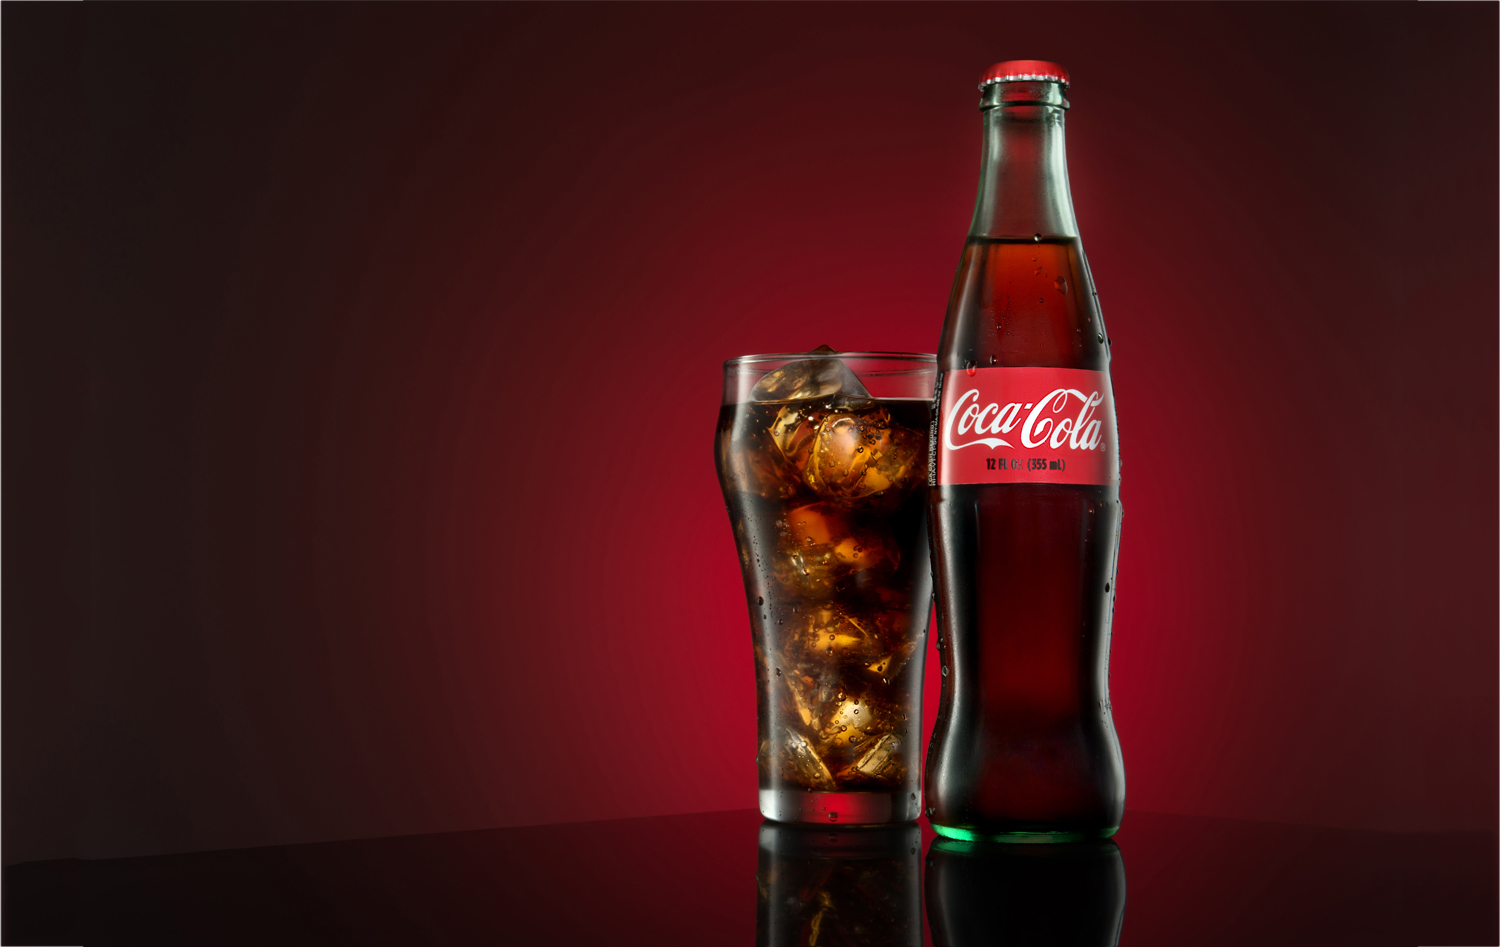 New-York-BeveragePhotography-StillLife-Coke